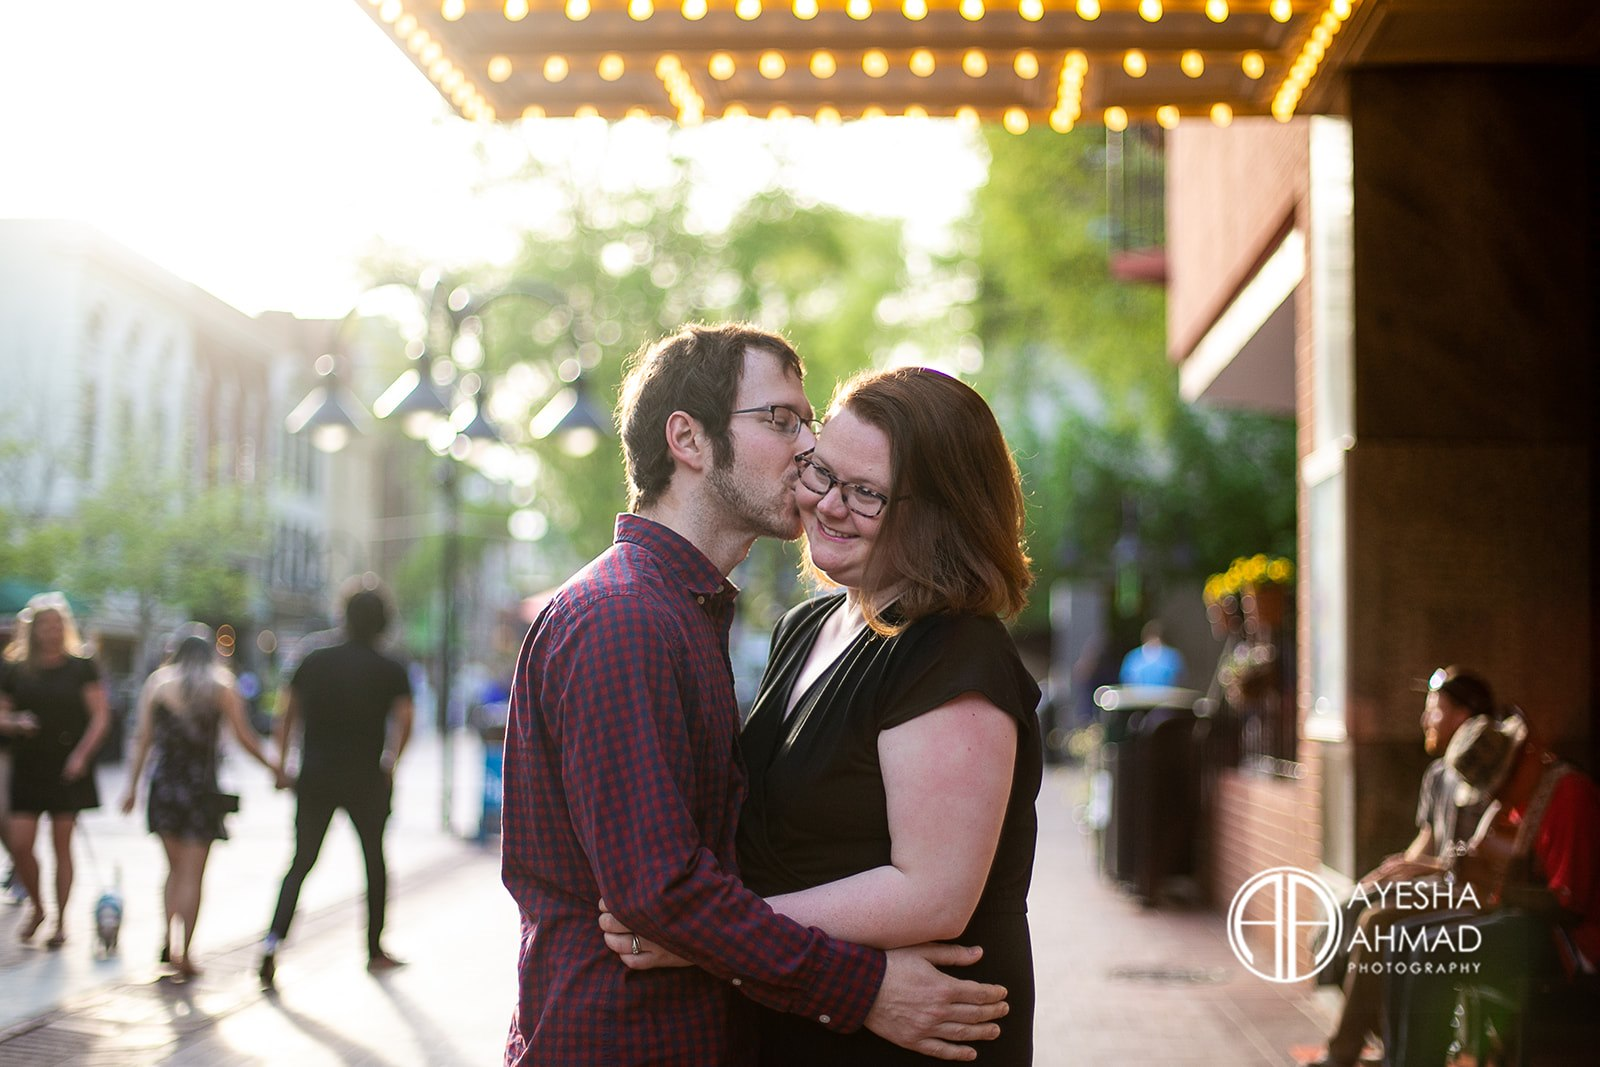 Jen and cameron kiss in front of The Paramount Theatre during couples session in Downtown Charlottesville Virginia Ayesha Ahmad Photography